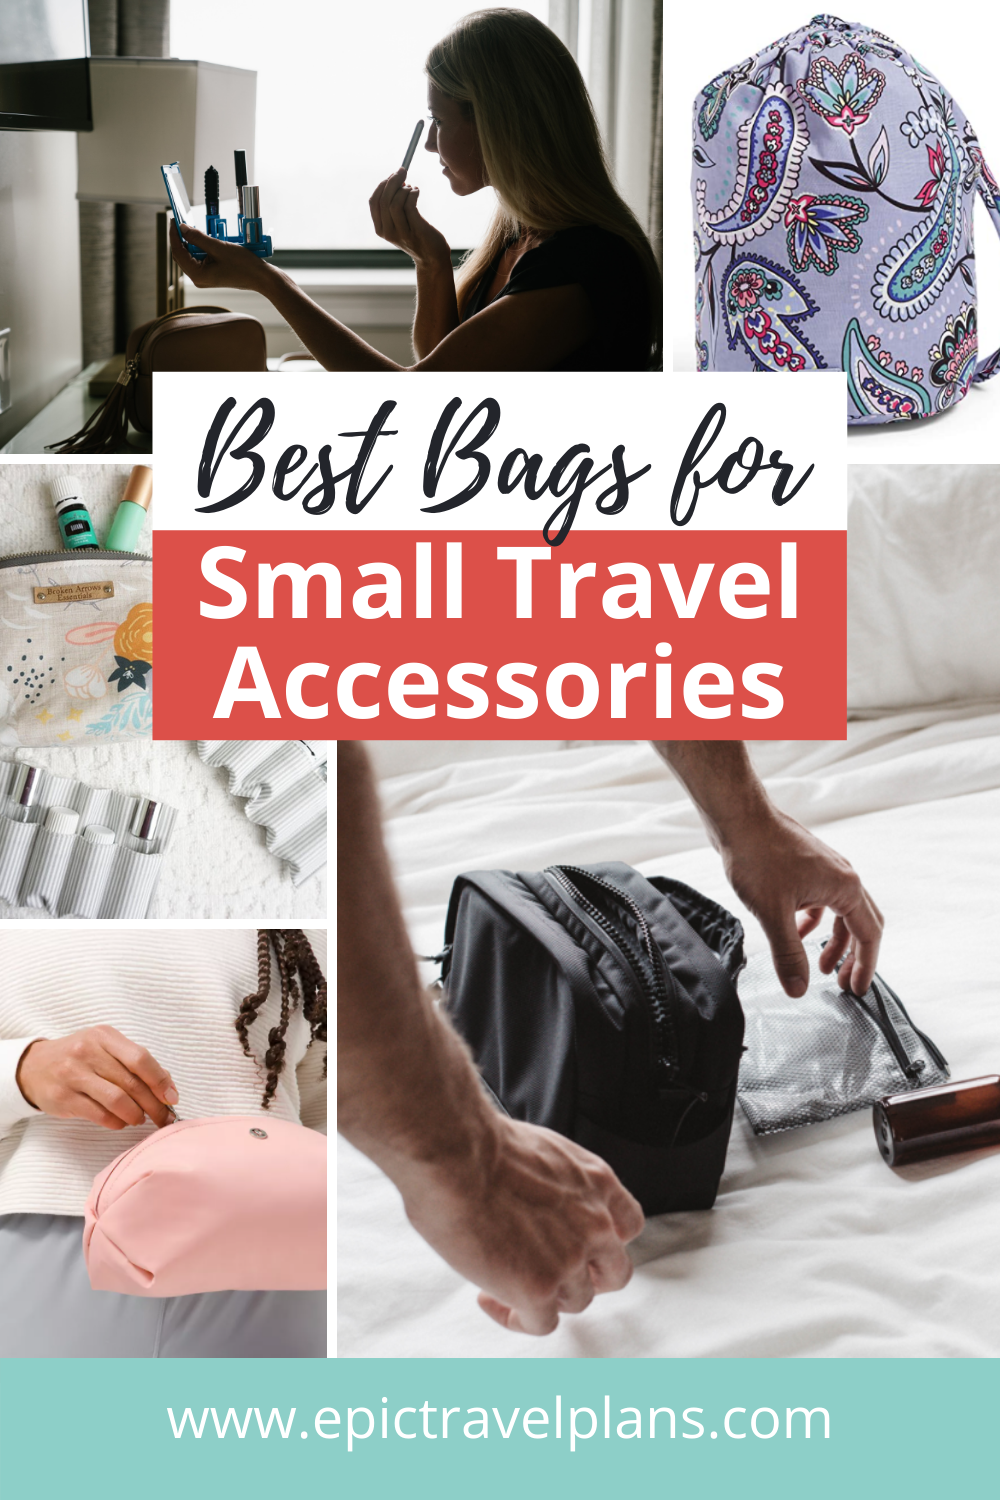 Best small travel accessory bags, makeup pouches, dopp kits